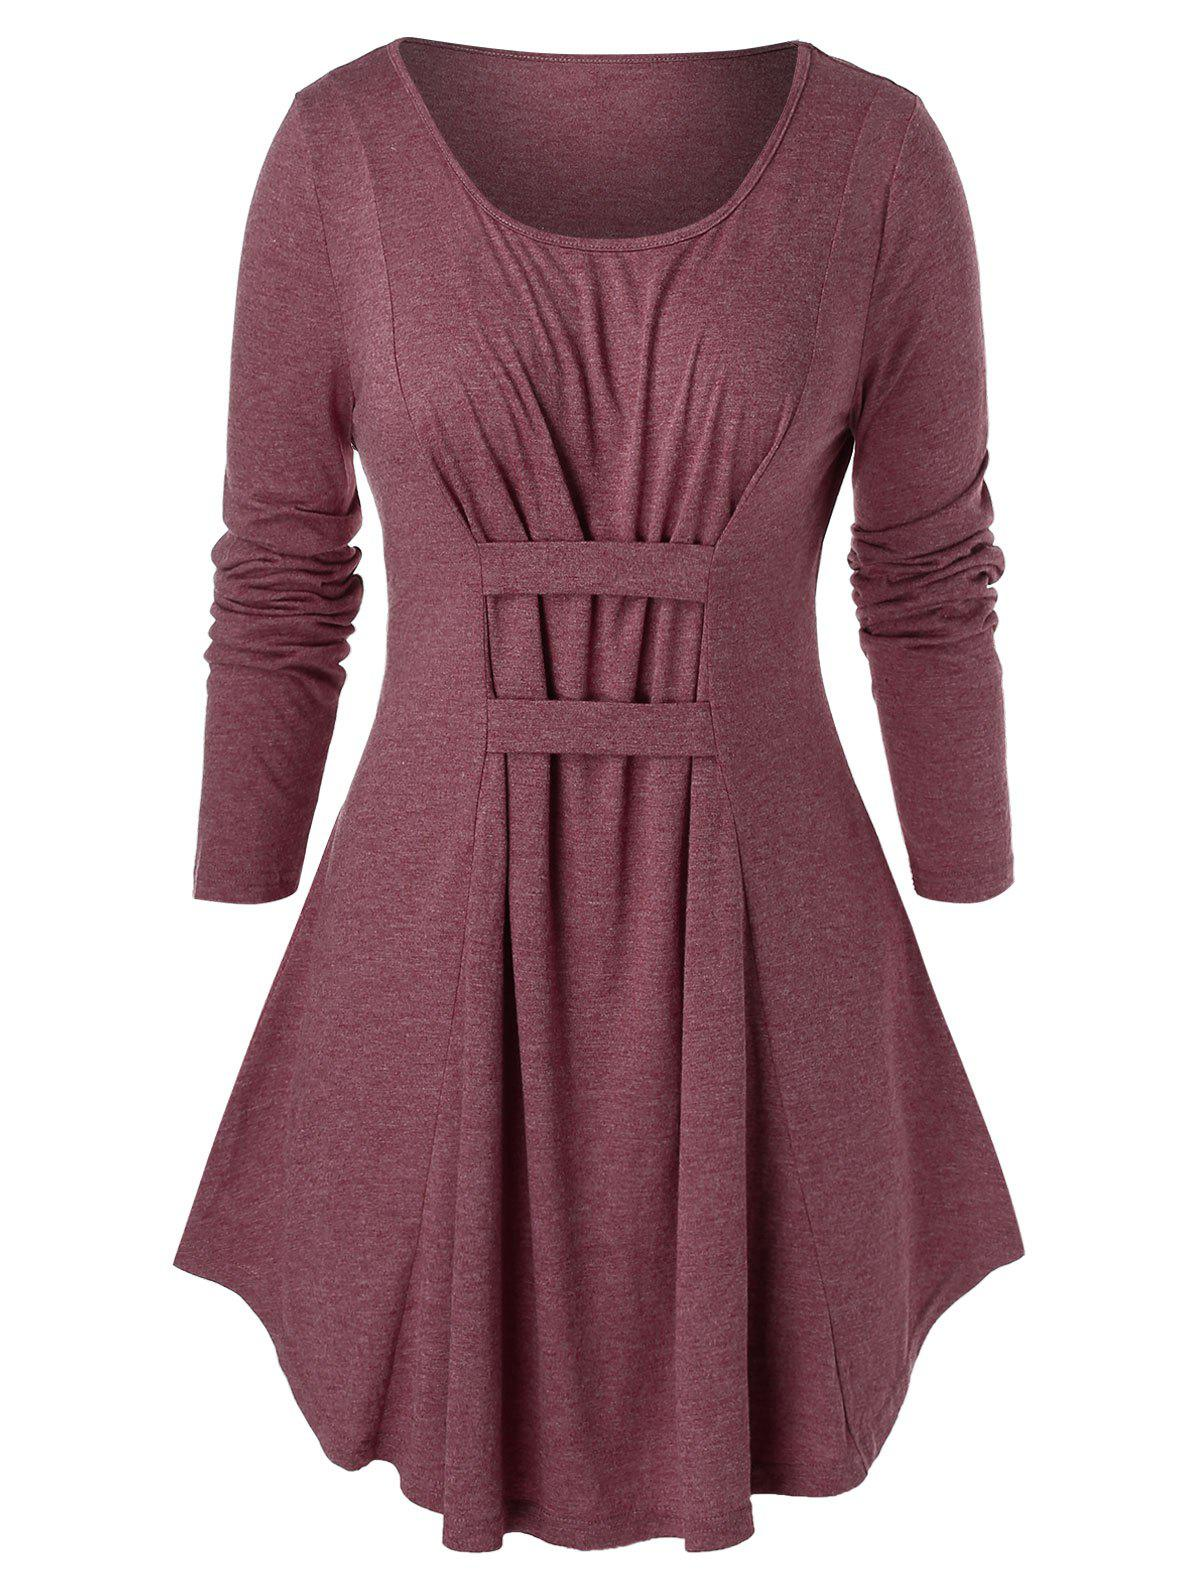 Plus Size Space Dye Tunic Round Collar T Shirt - CHERRY RED 4X